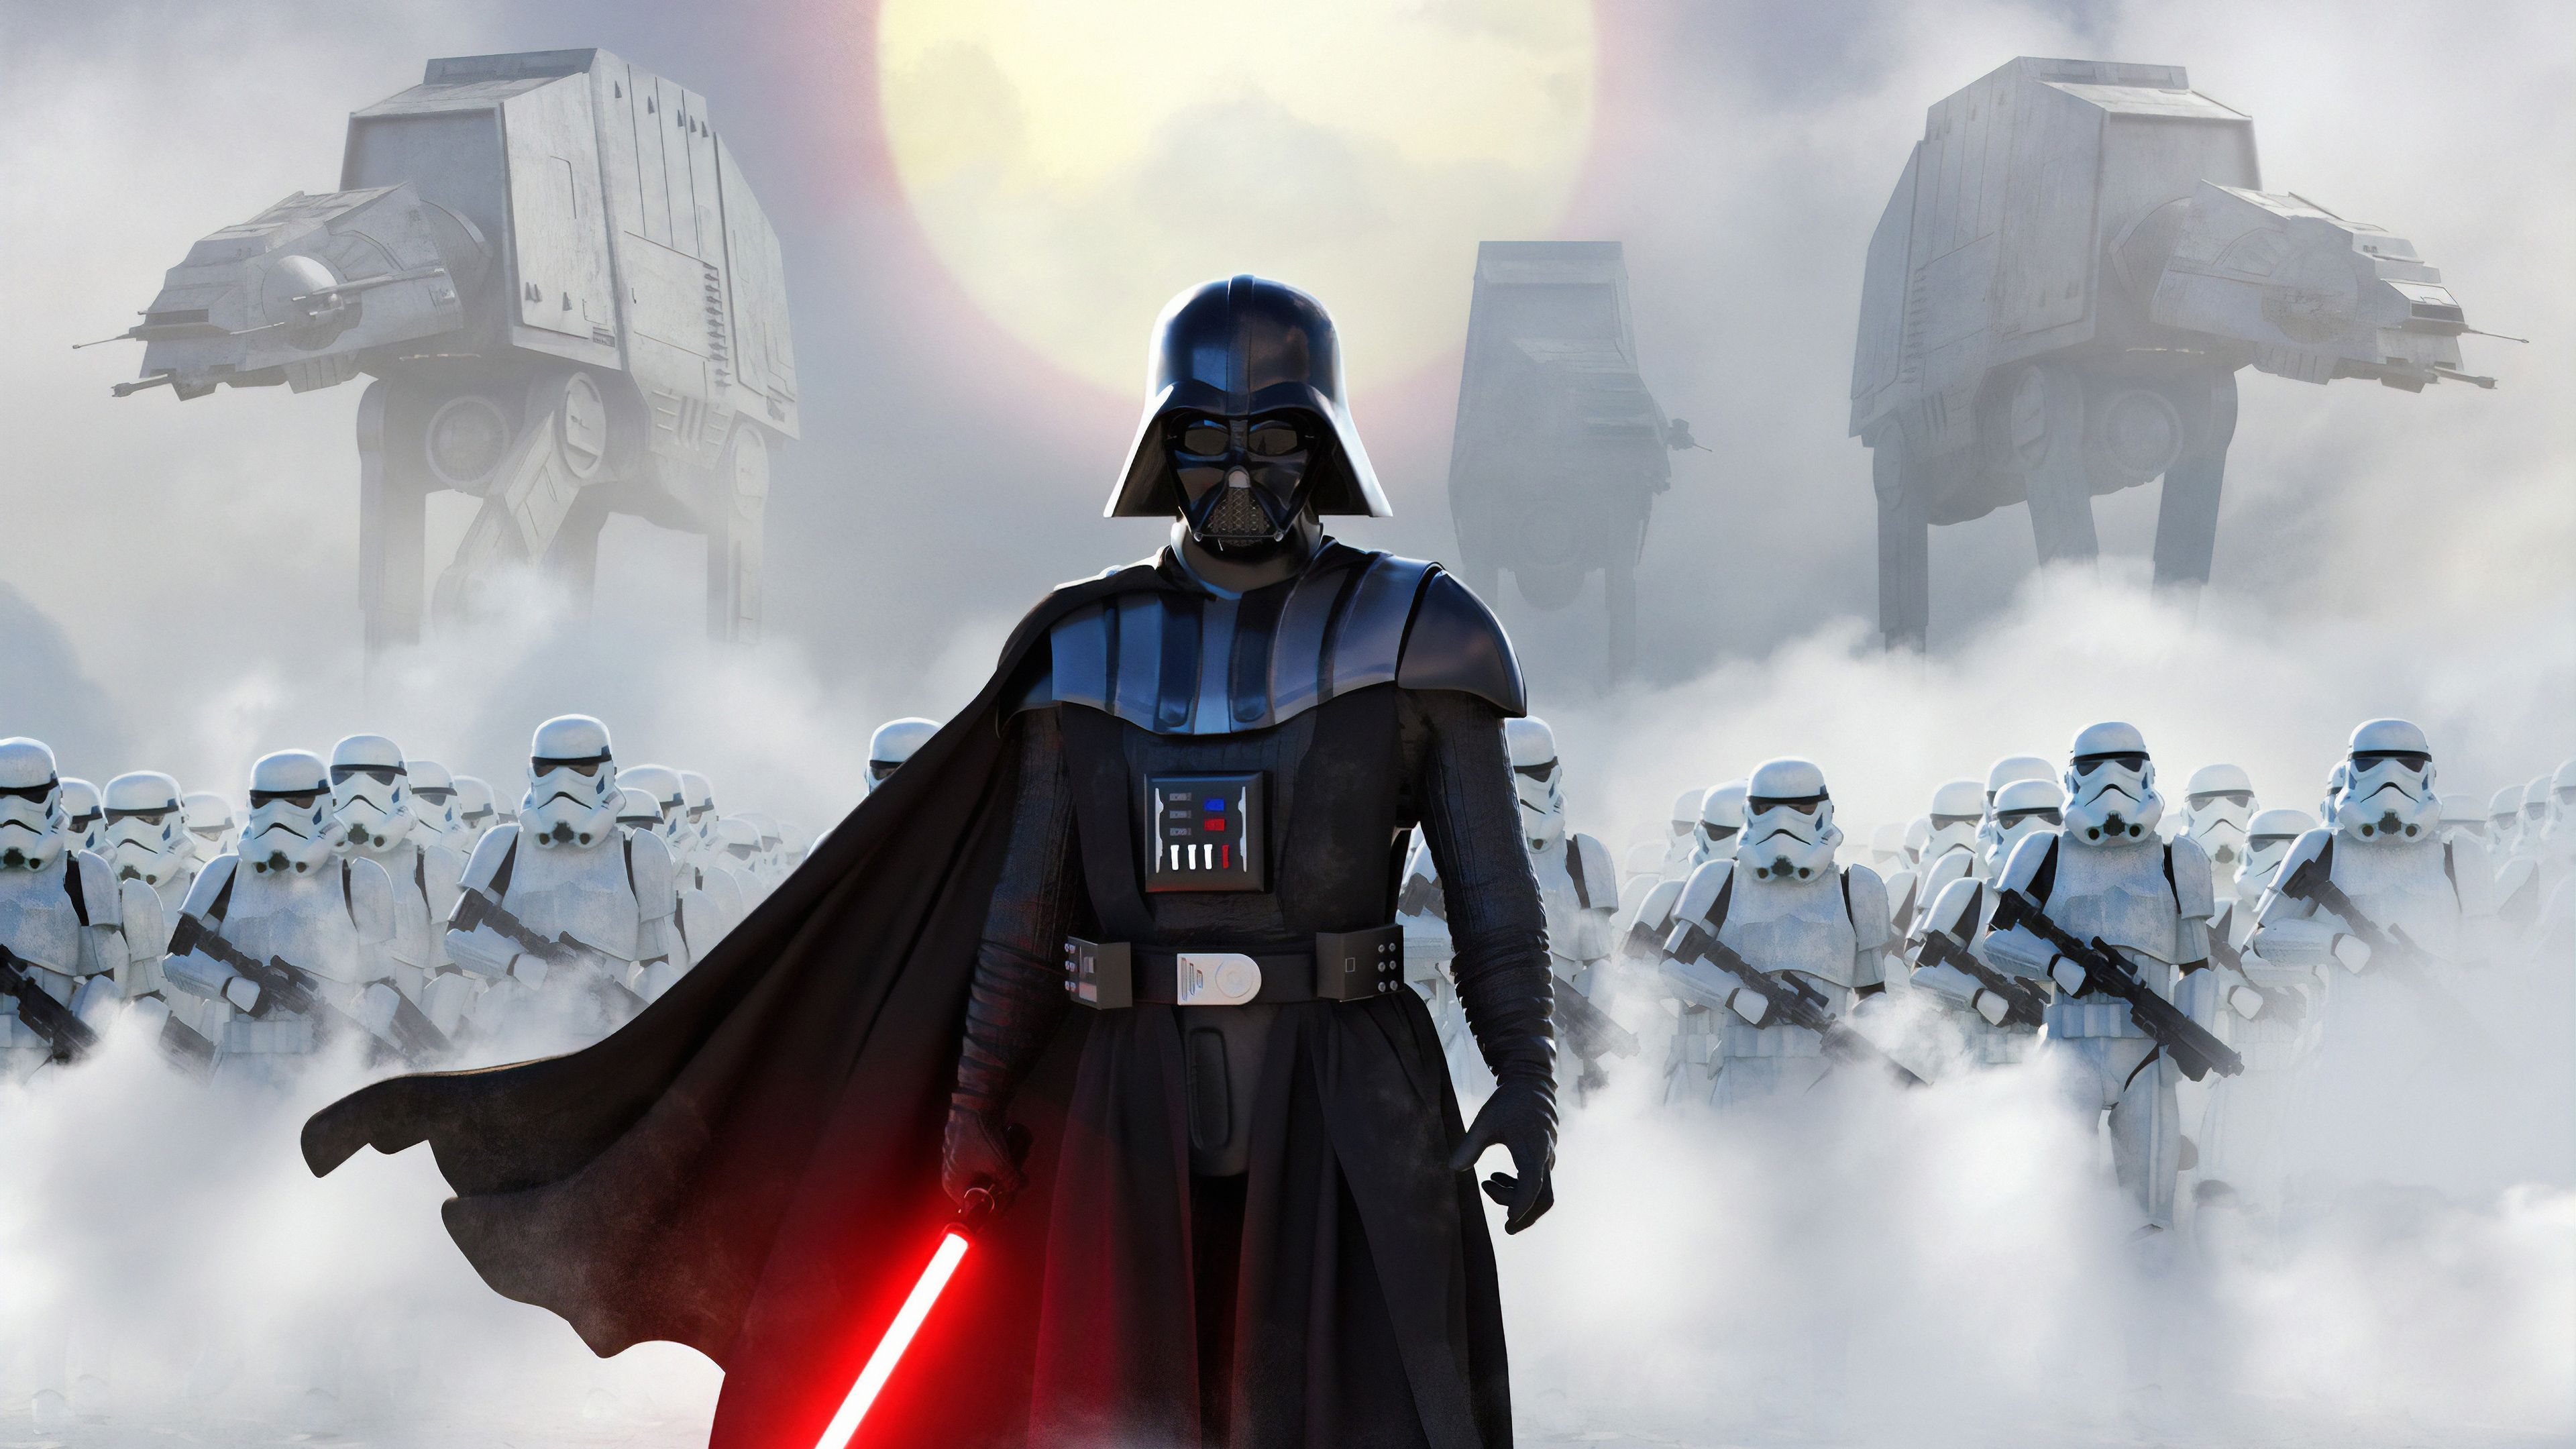 4k Darth Vader Hd Artist 4k Wallpapers Images